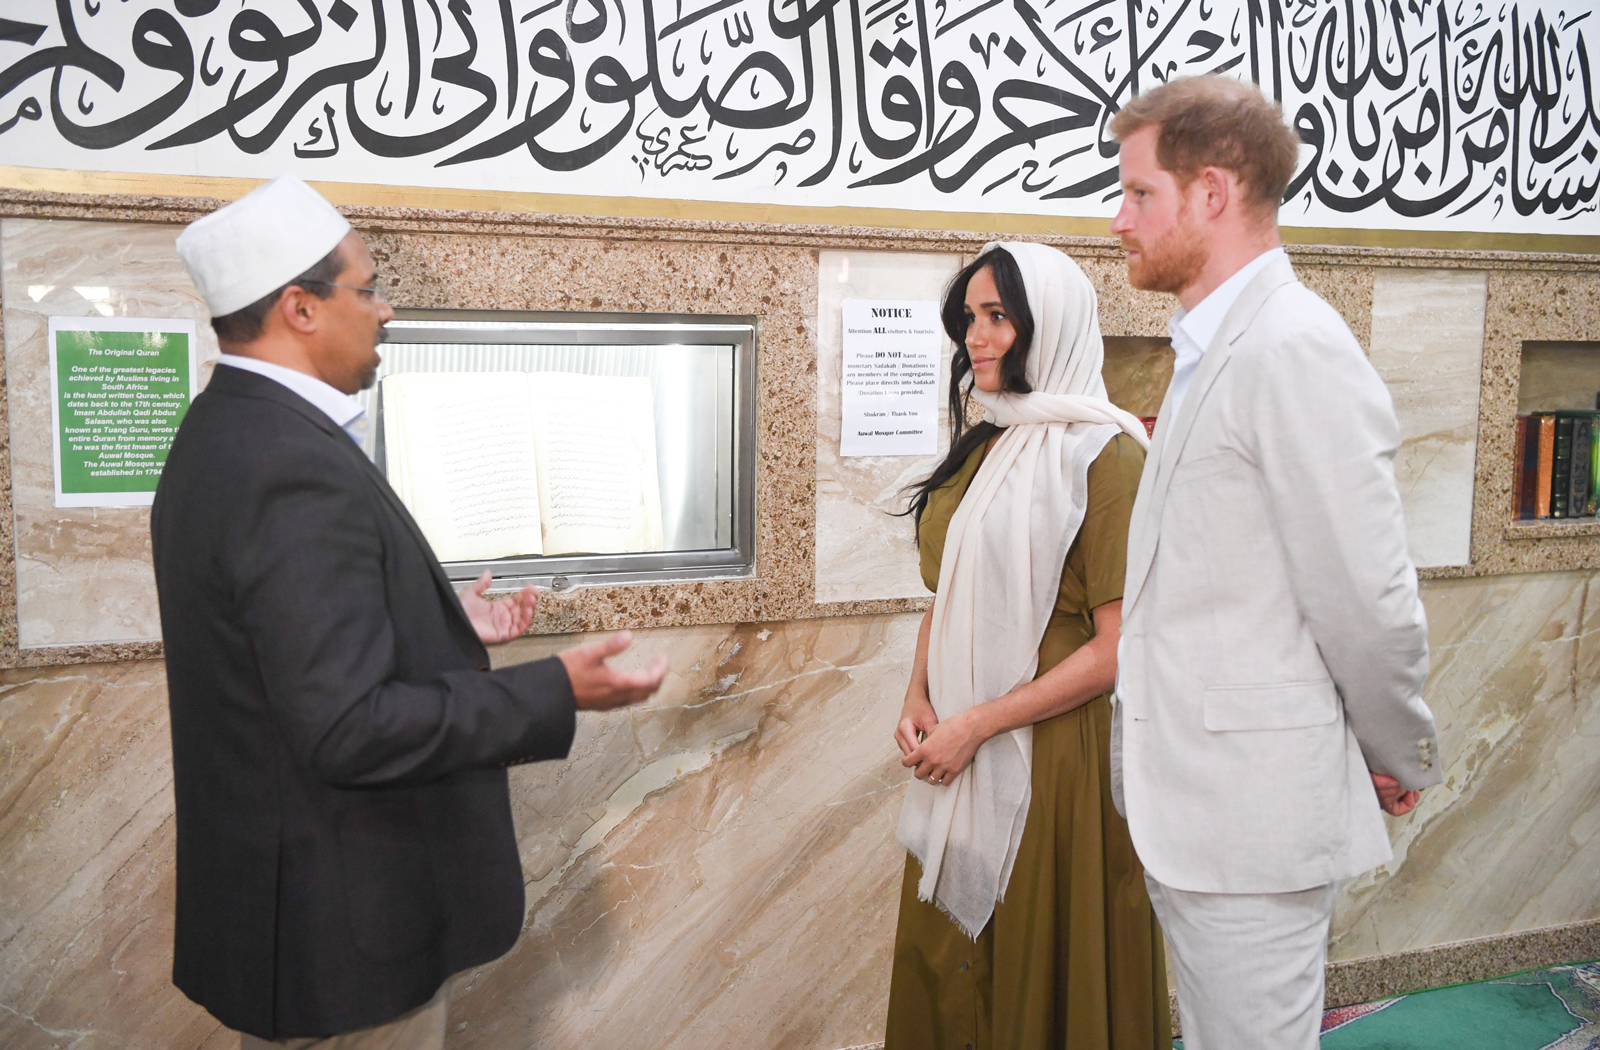 Kate Middleton and Prince William tour Pakistani Mosque Princess Diana visited decades ago